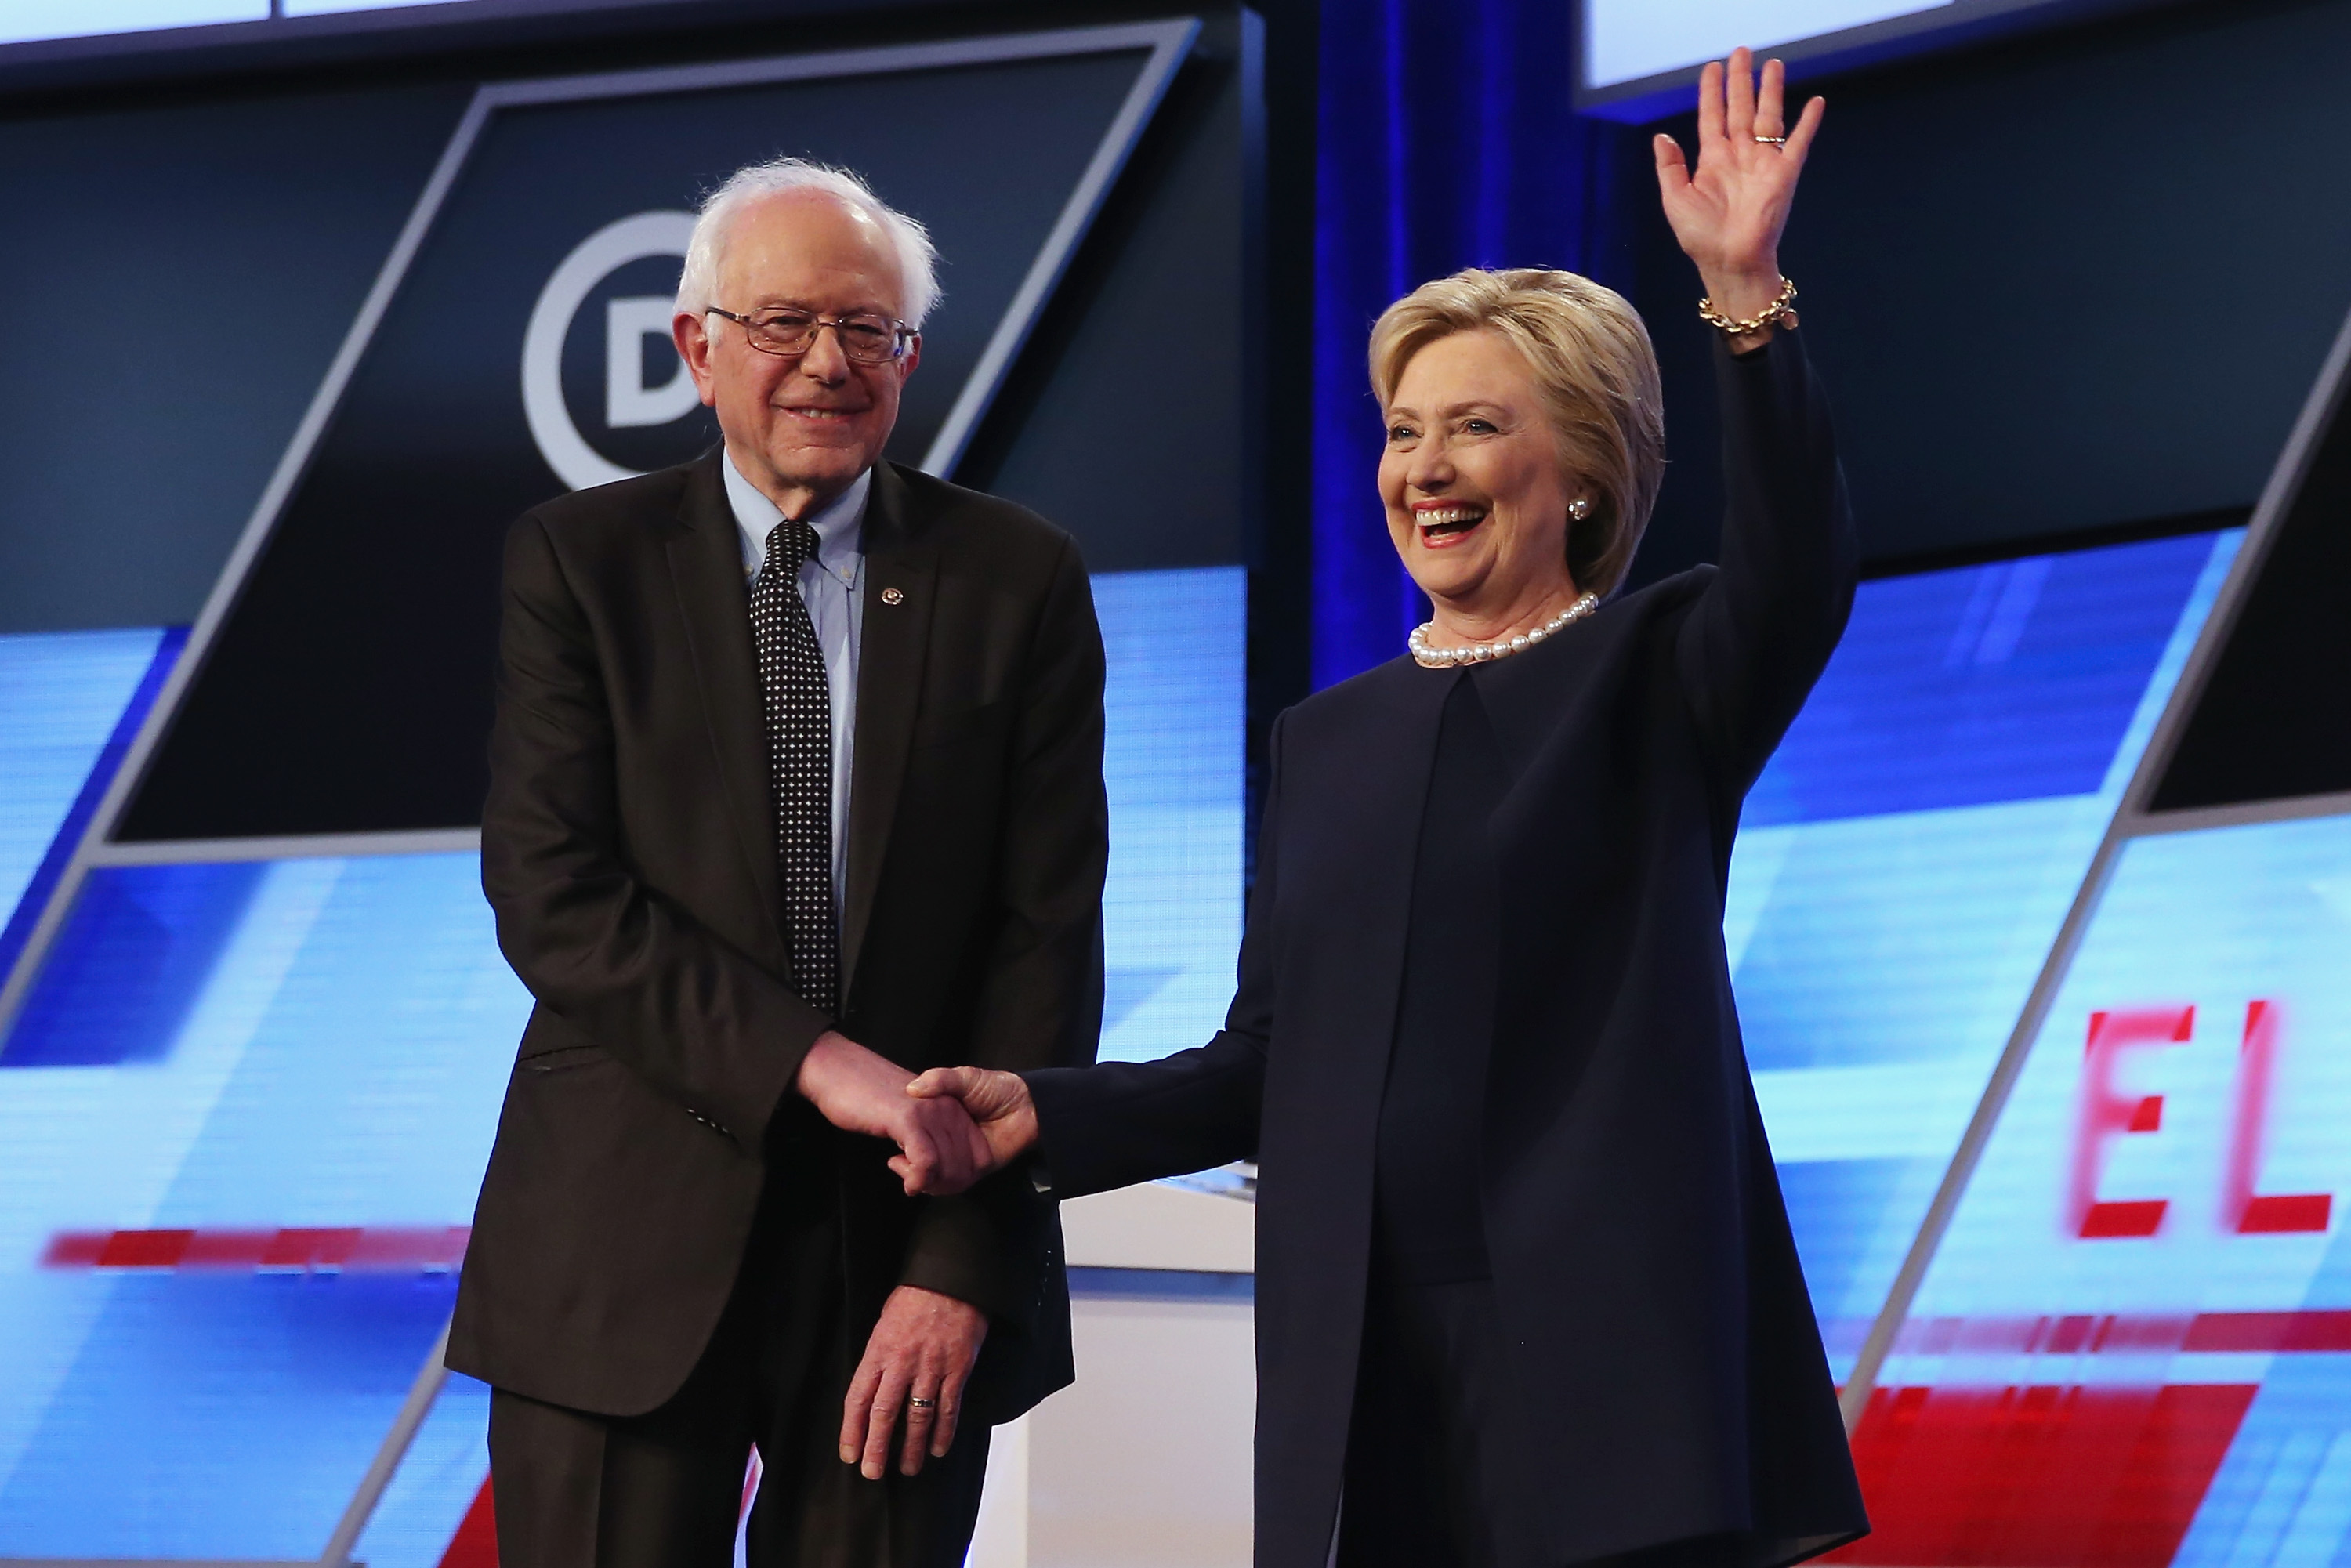 Democratic presidential candidates Senator Bernie Sanders (D-VT) and Democratic presidential candidate Hillary Clinton shake hands at a debate in March.